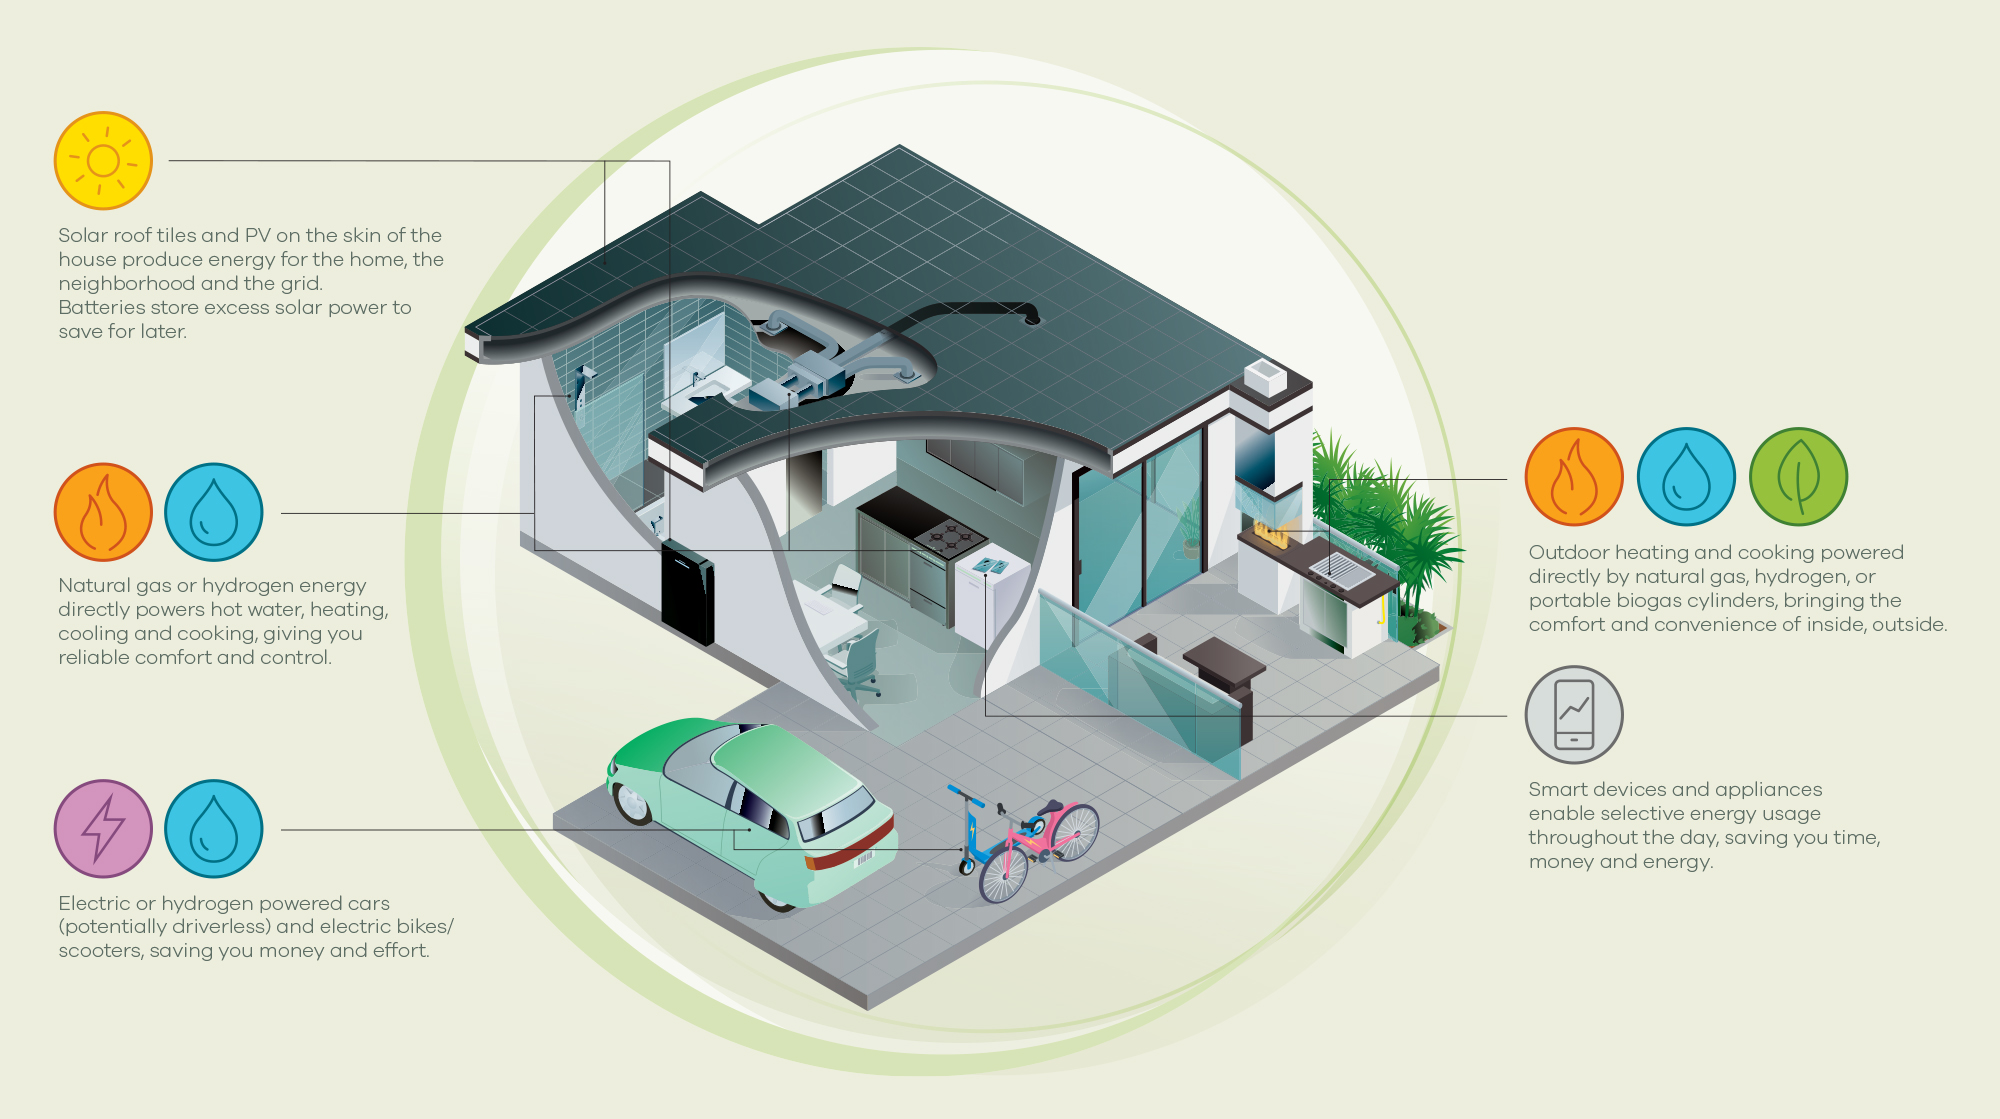 The Gas Hub's vision of a future energy home